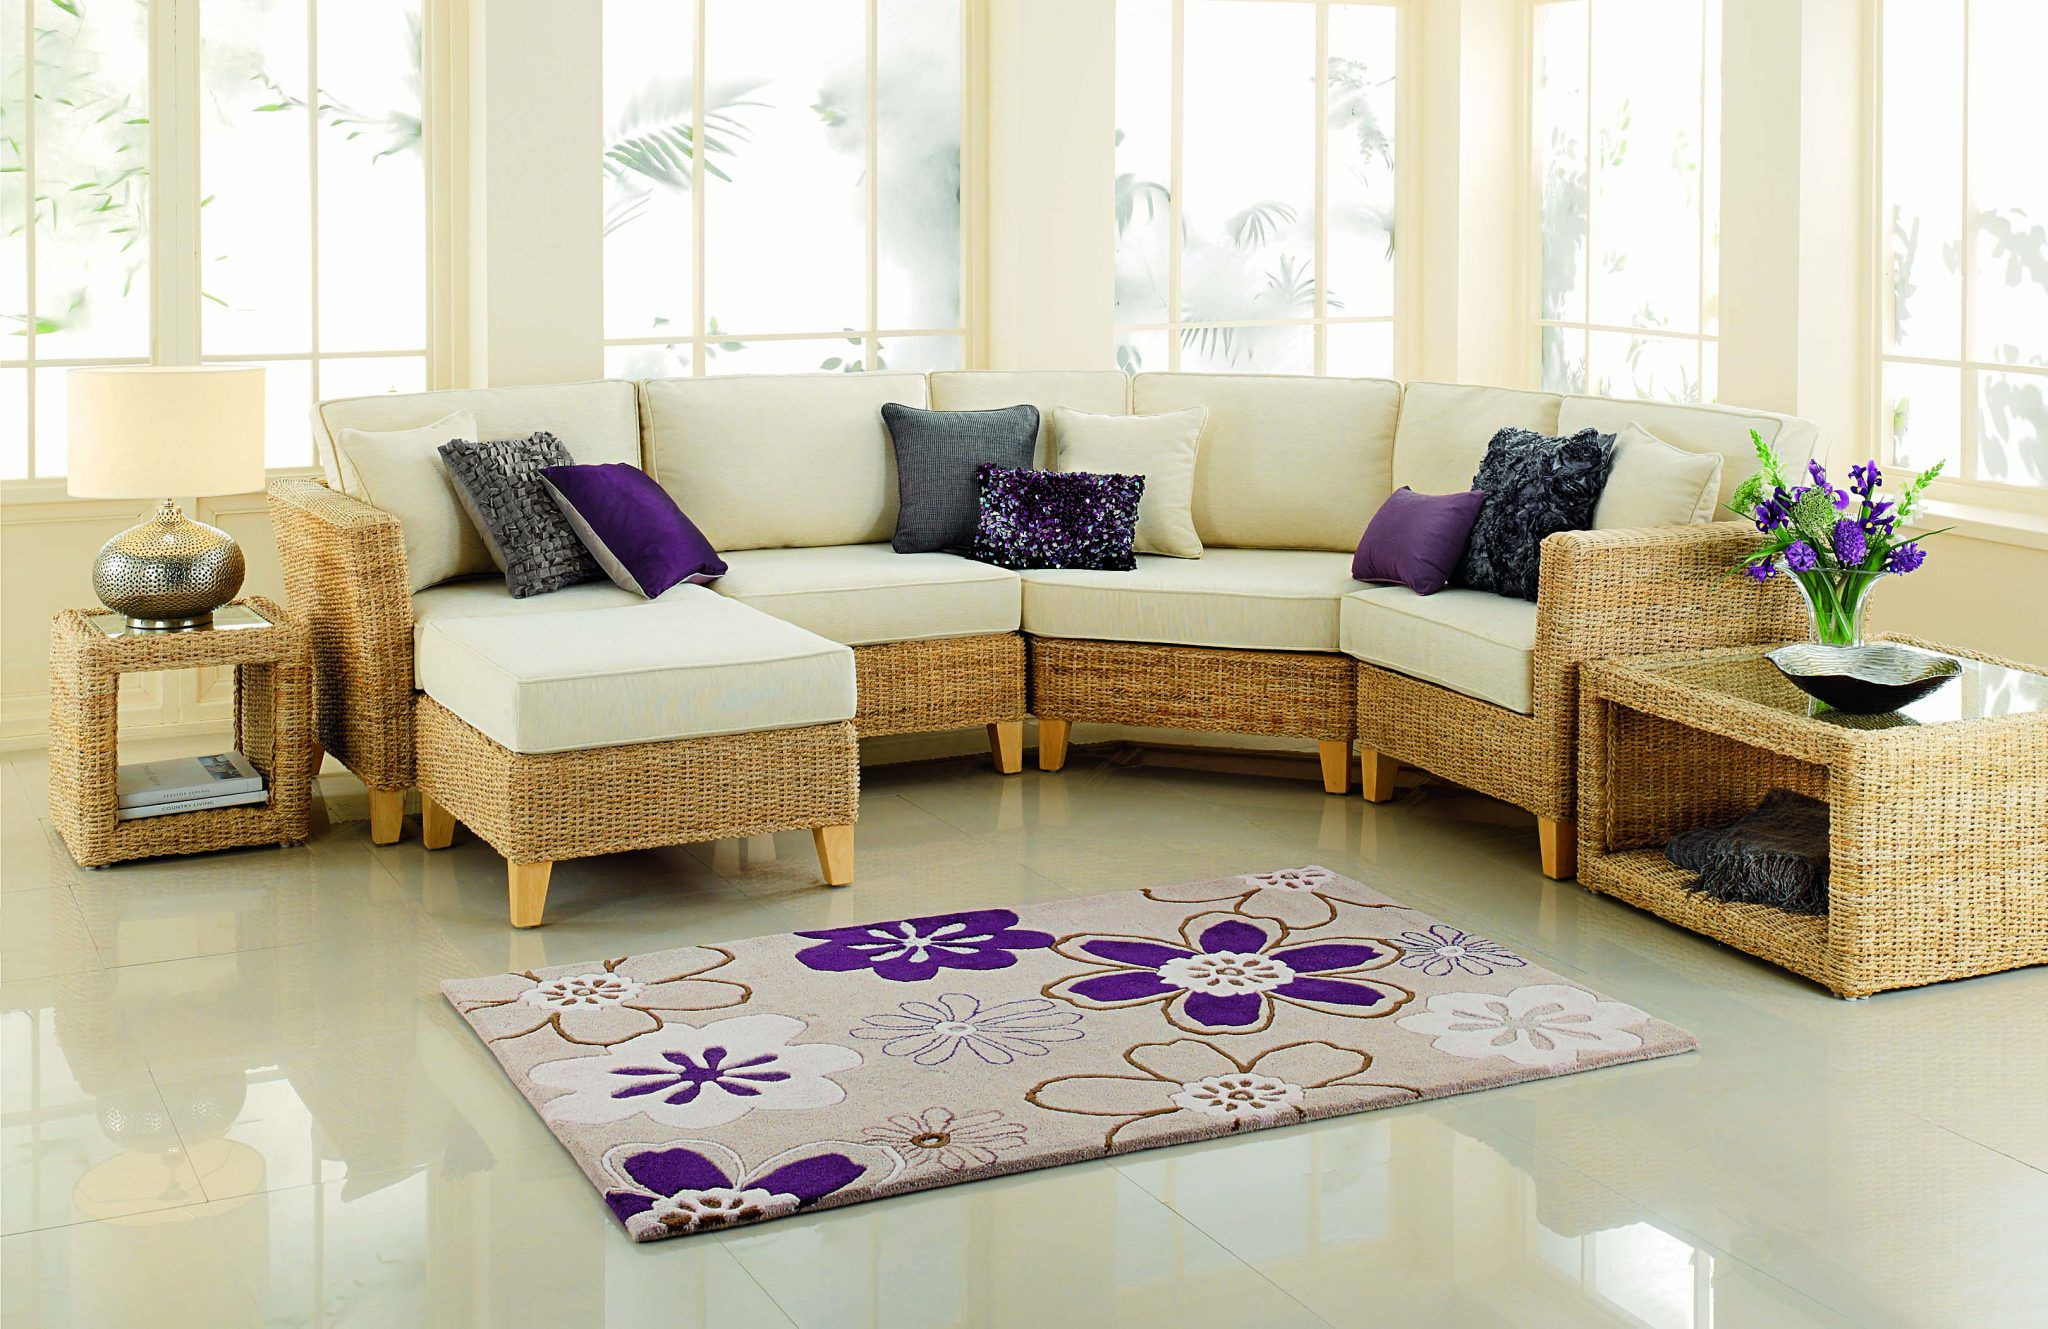 Pebble Banana Leaf Corner Unit With Angled Sofa There Are 2 Other Options